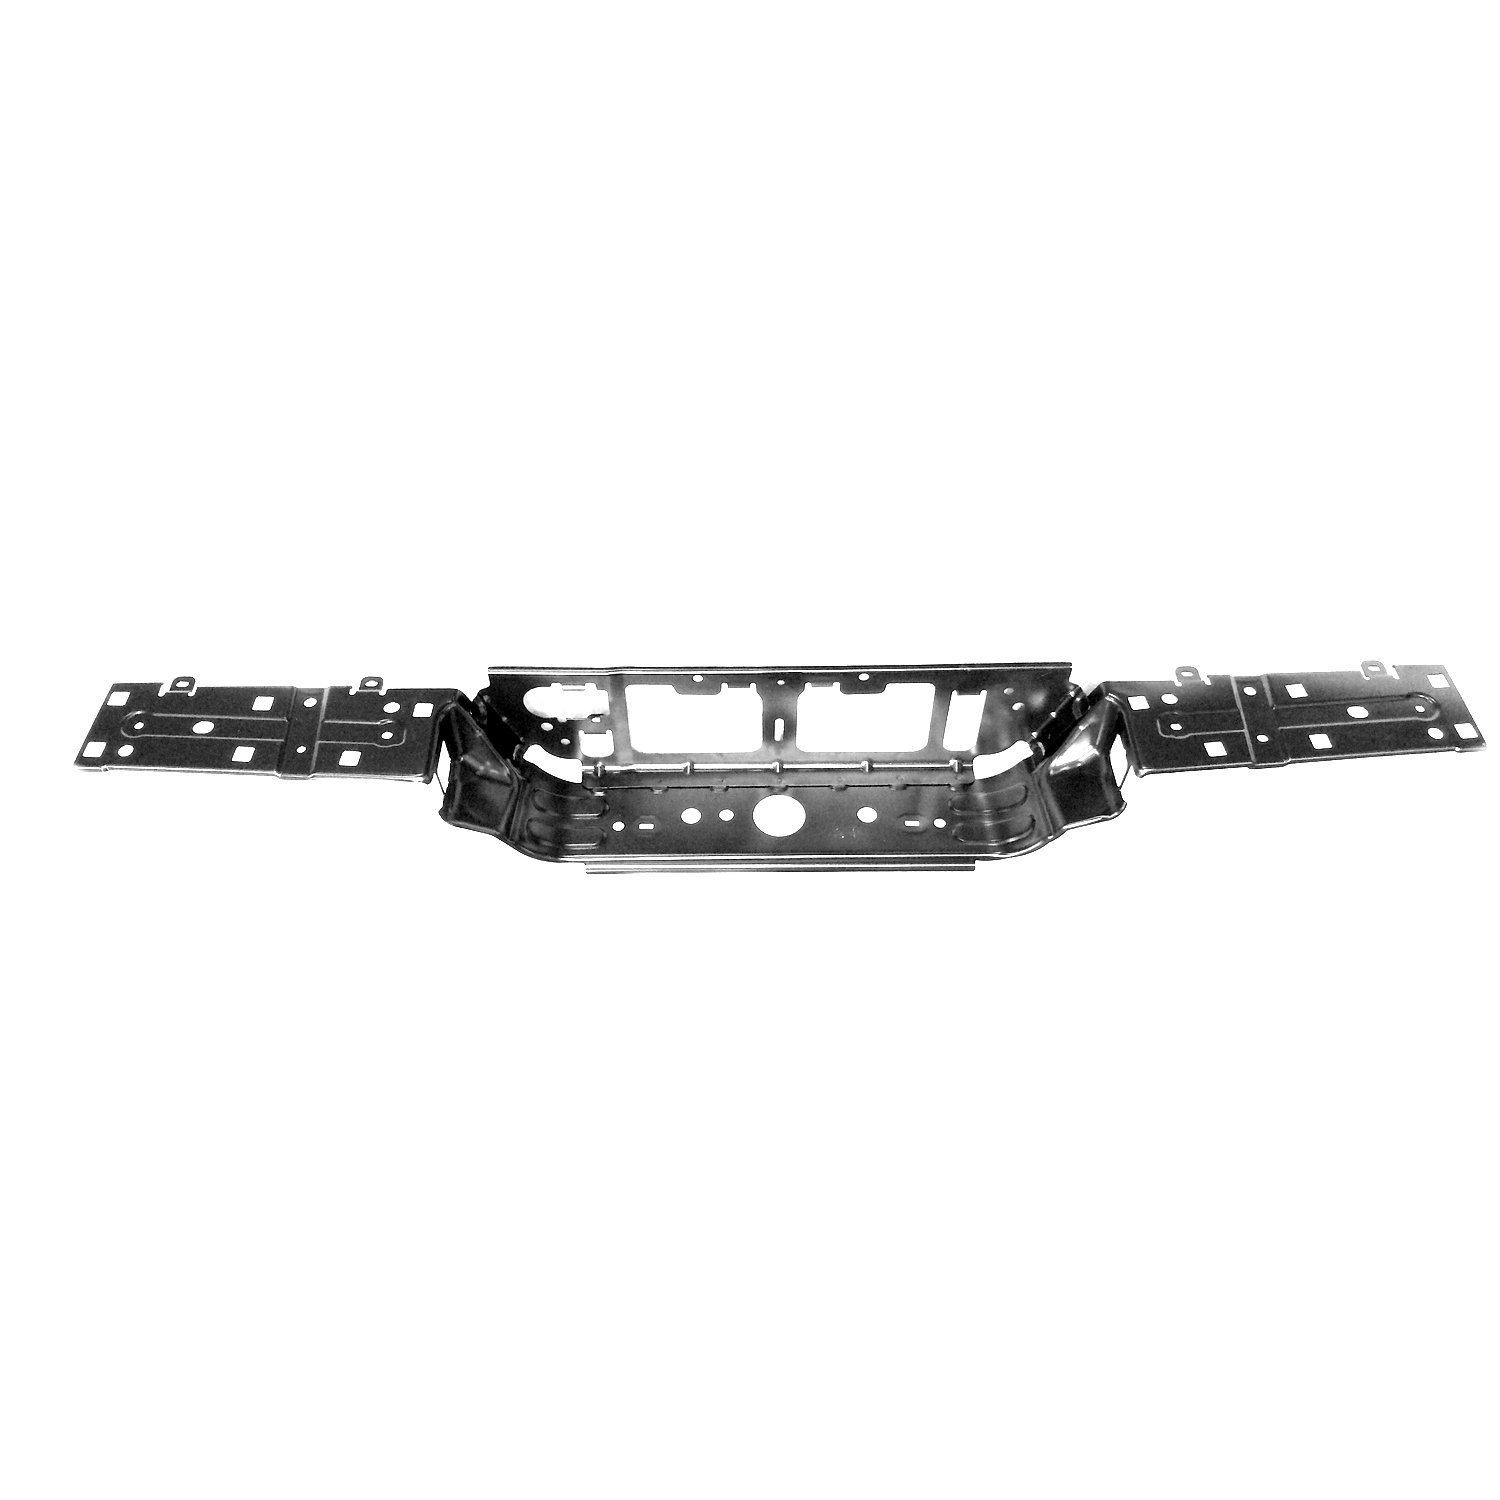 CPP Rear Steel Bumper Face Bar for 2016 Toyota Tacoma